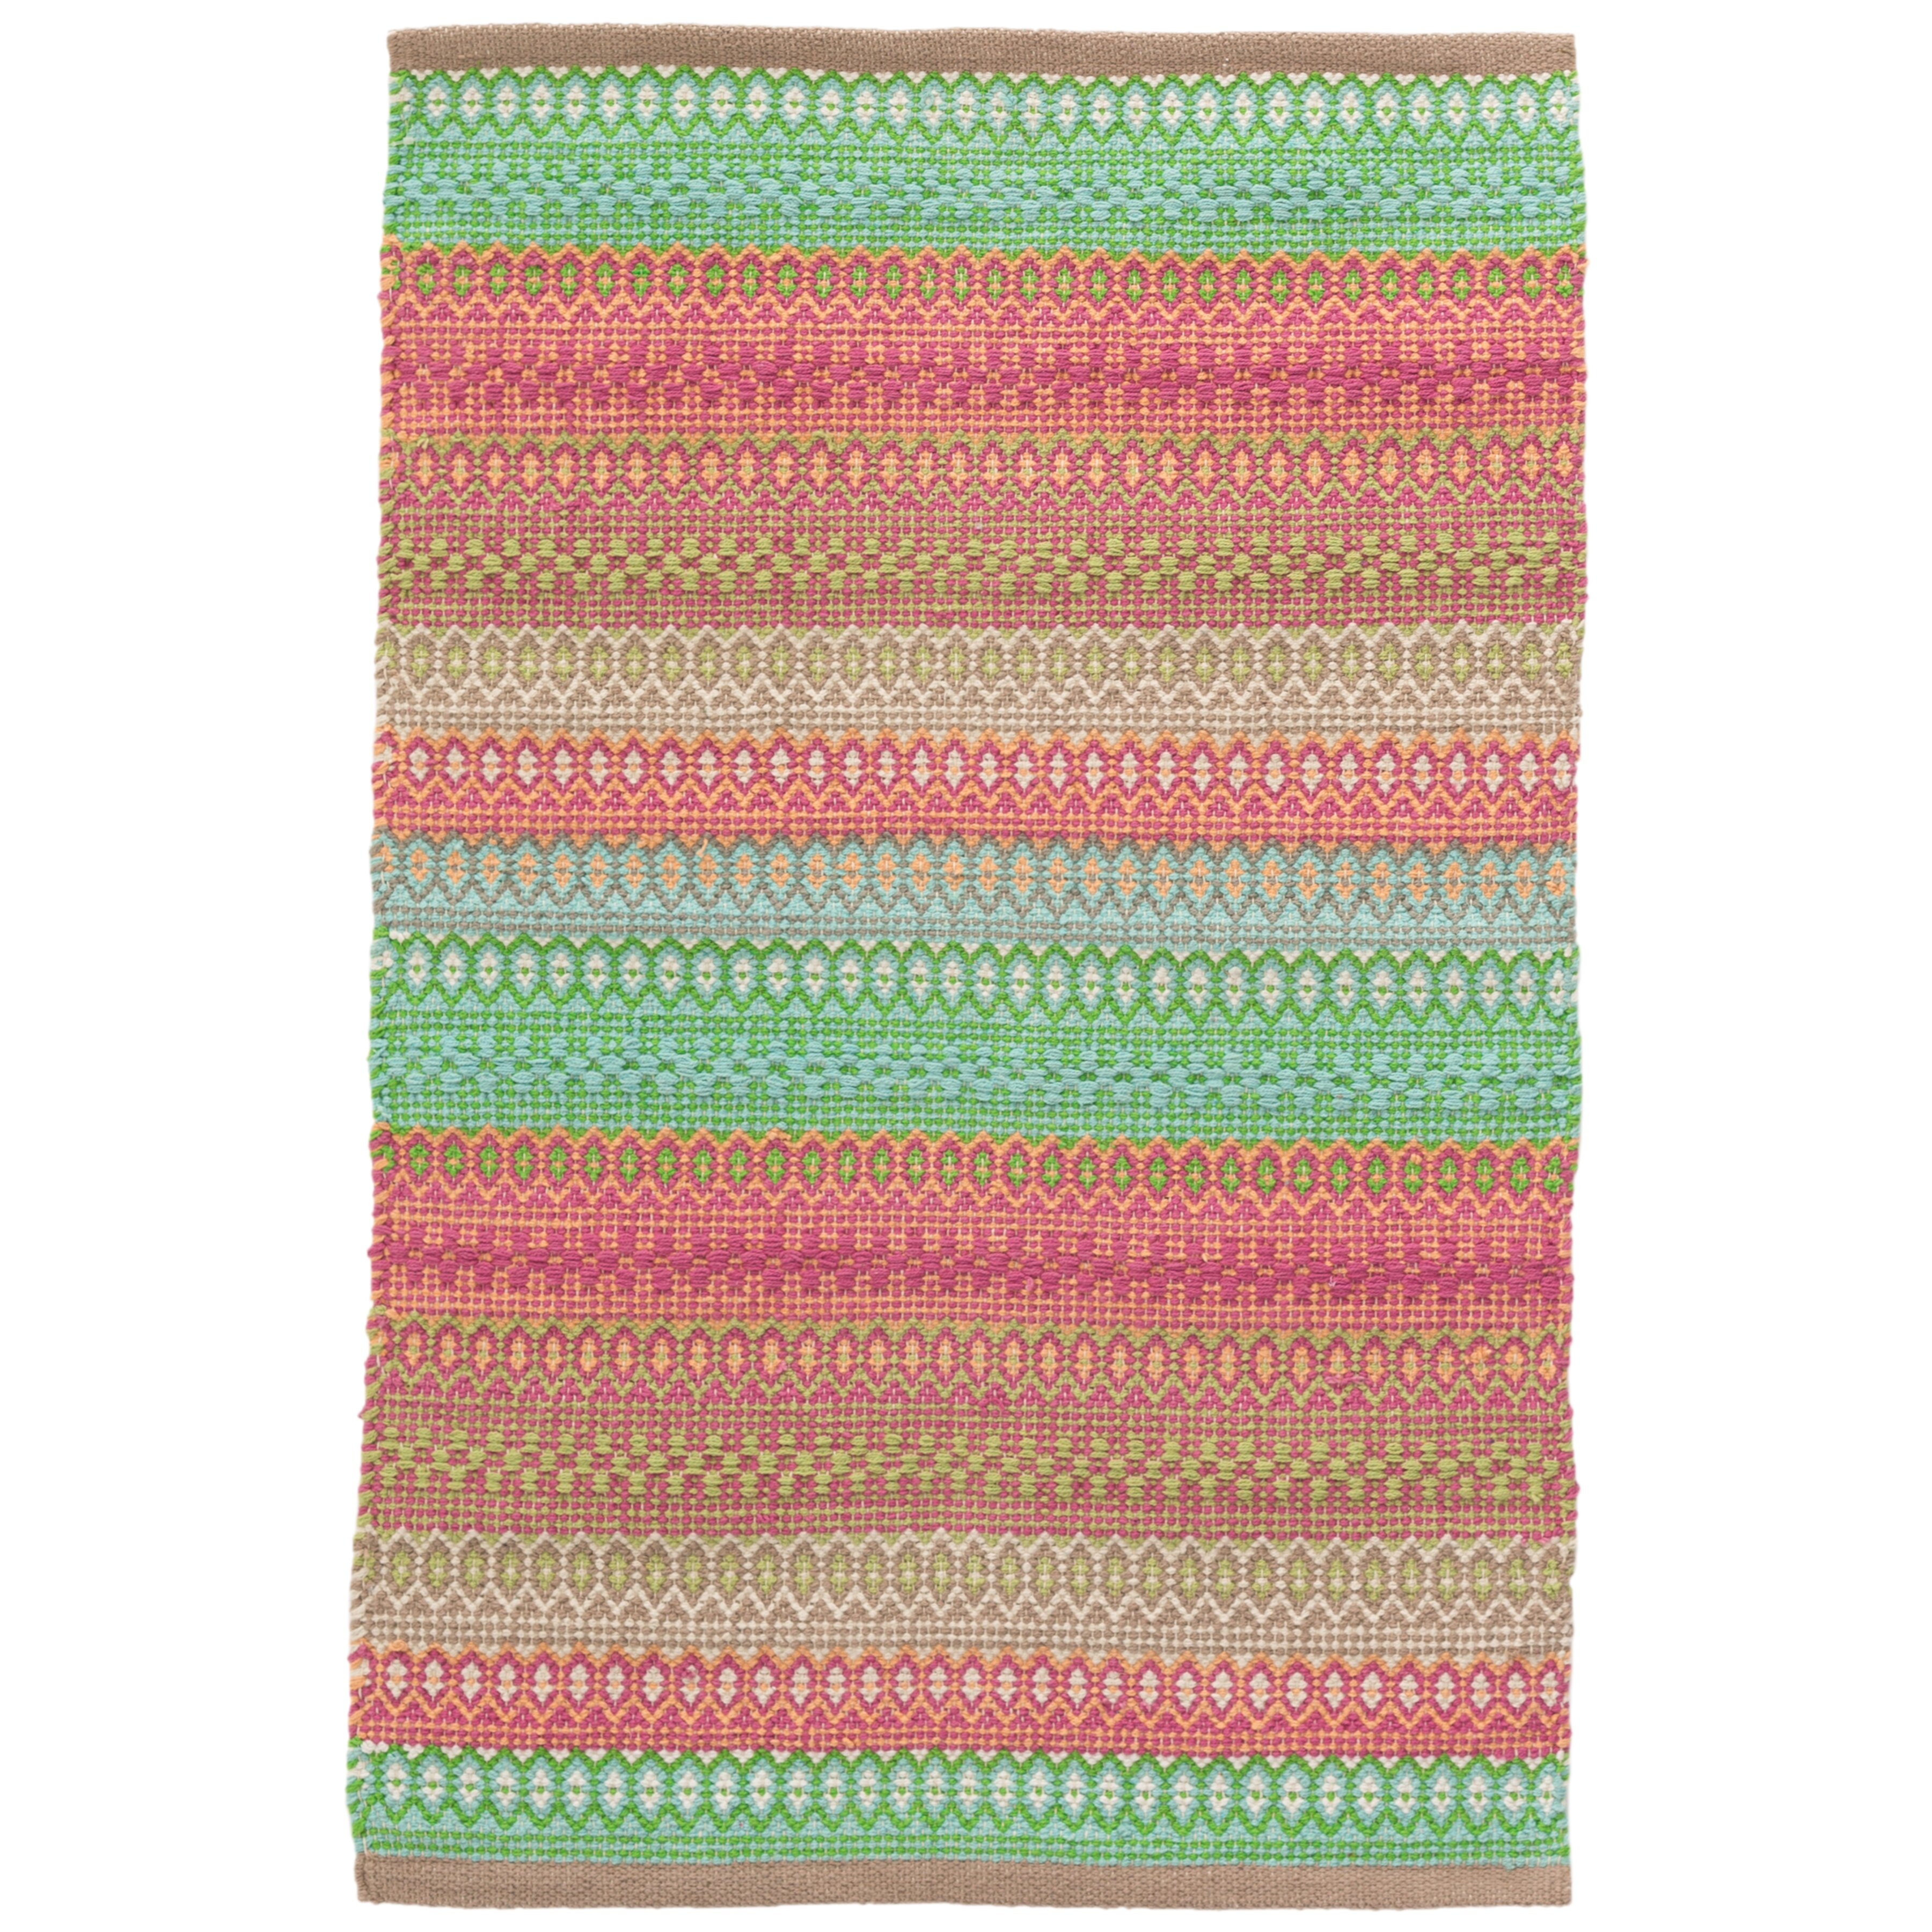 Dash And Albert Rugs Gypsy Pink/Green Area Rug & Reviews